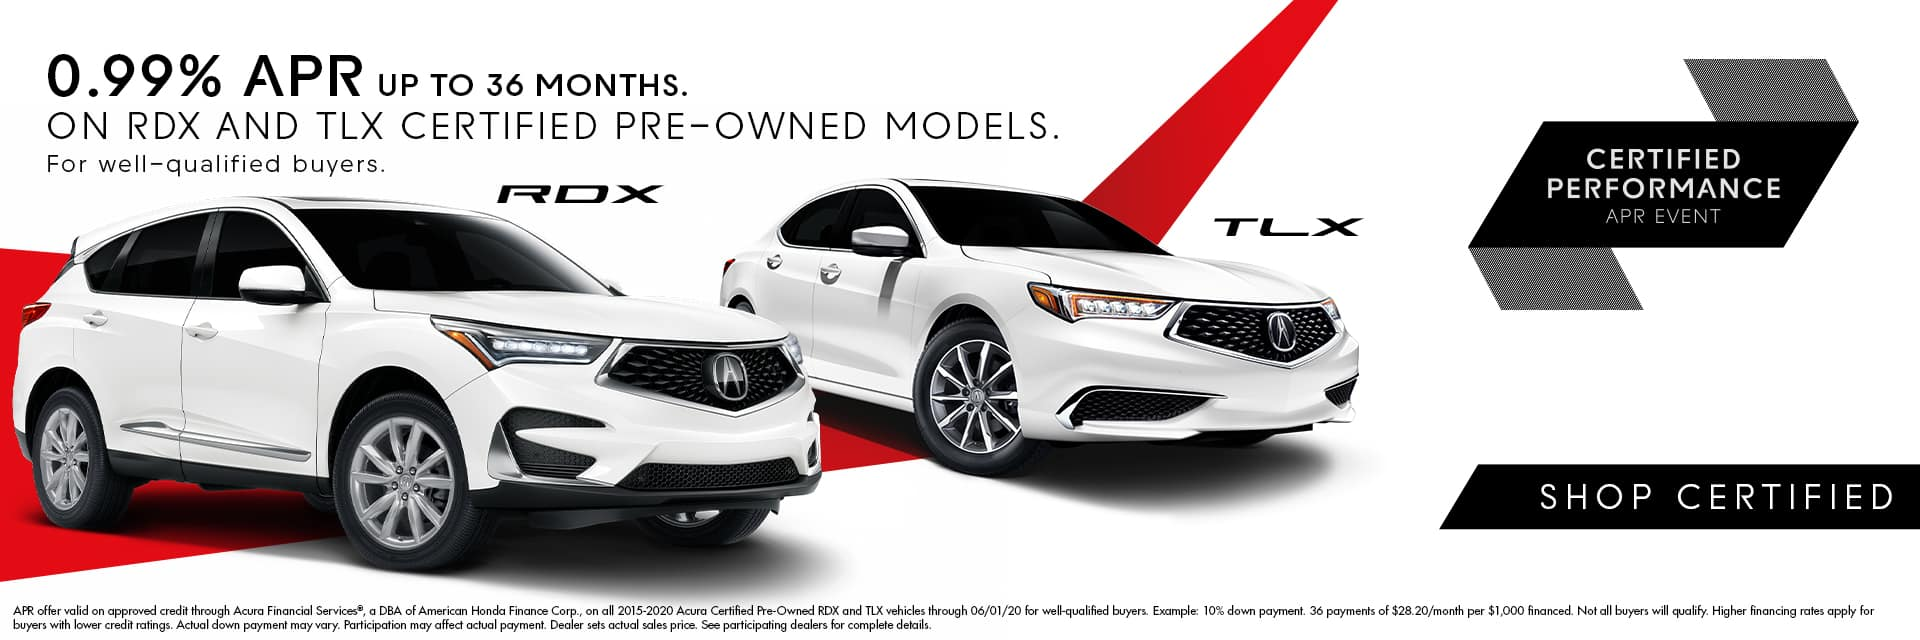 Acura Certified Pre-Owned APR Offer - Sunnyside Acura Nashua NH 03063